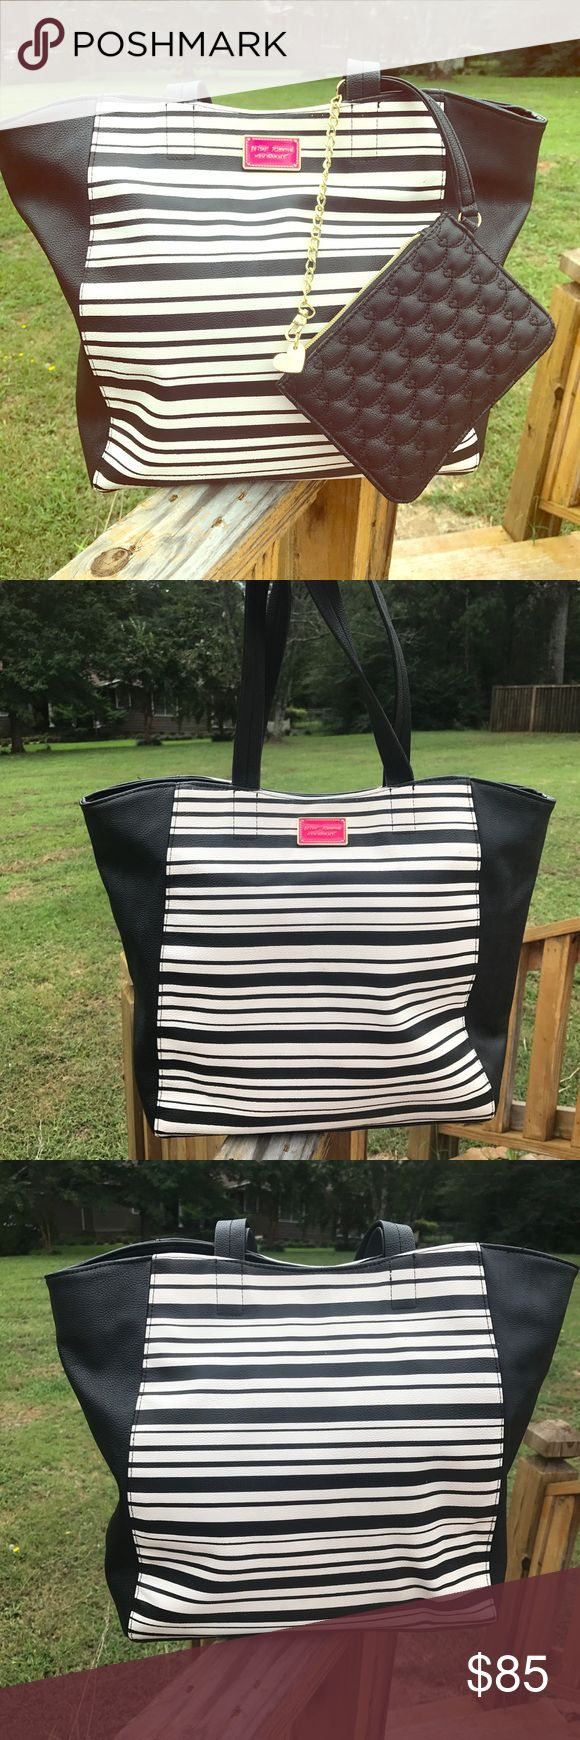 """Betsy Johnson tote bag/Bonus Wristlet Fun and cute black/cream tote bag by Betsy Johnson is in excellent condition. 13"""" (H) x 16"""" (w). Floral pattern interior. Wristlet is 5"""" (H) x 7"""" (w). Reasonable offers welcome Betsey Johnson Bags Totes"""